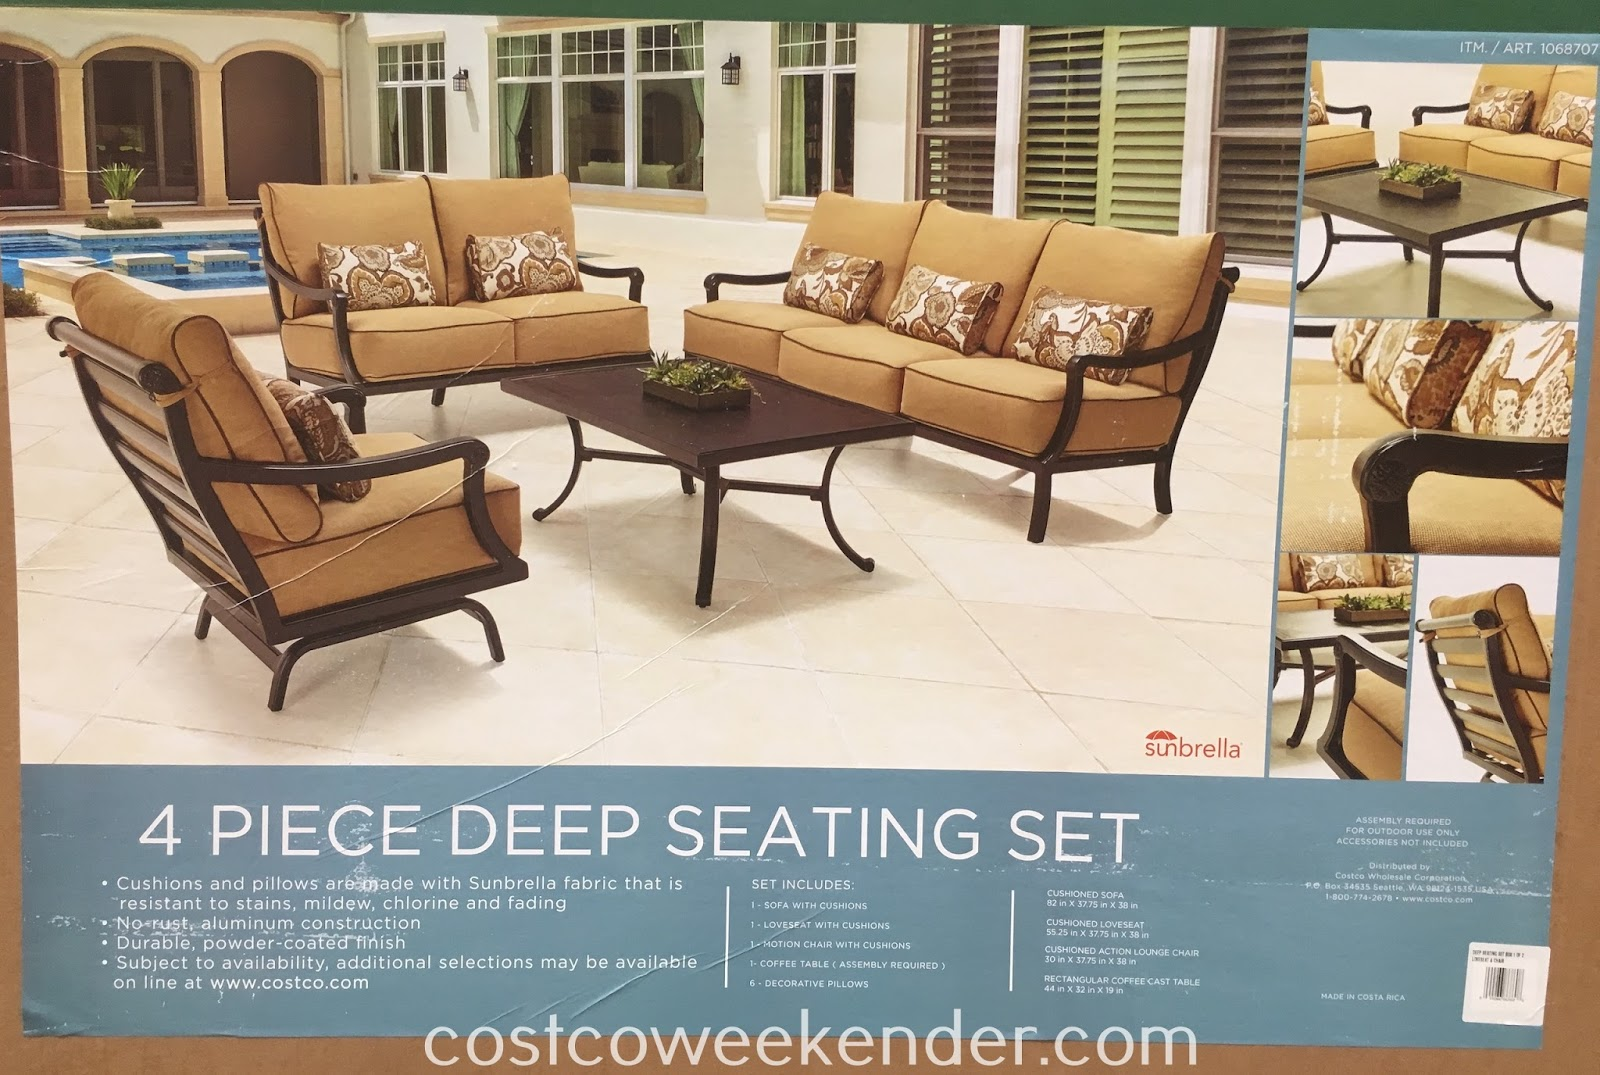 Costco 1068707 - Pride Family Brands 4 piece Deep Seating Set - great for any patio or backyard